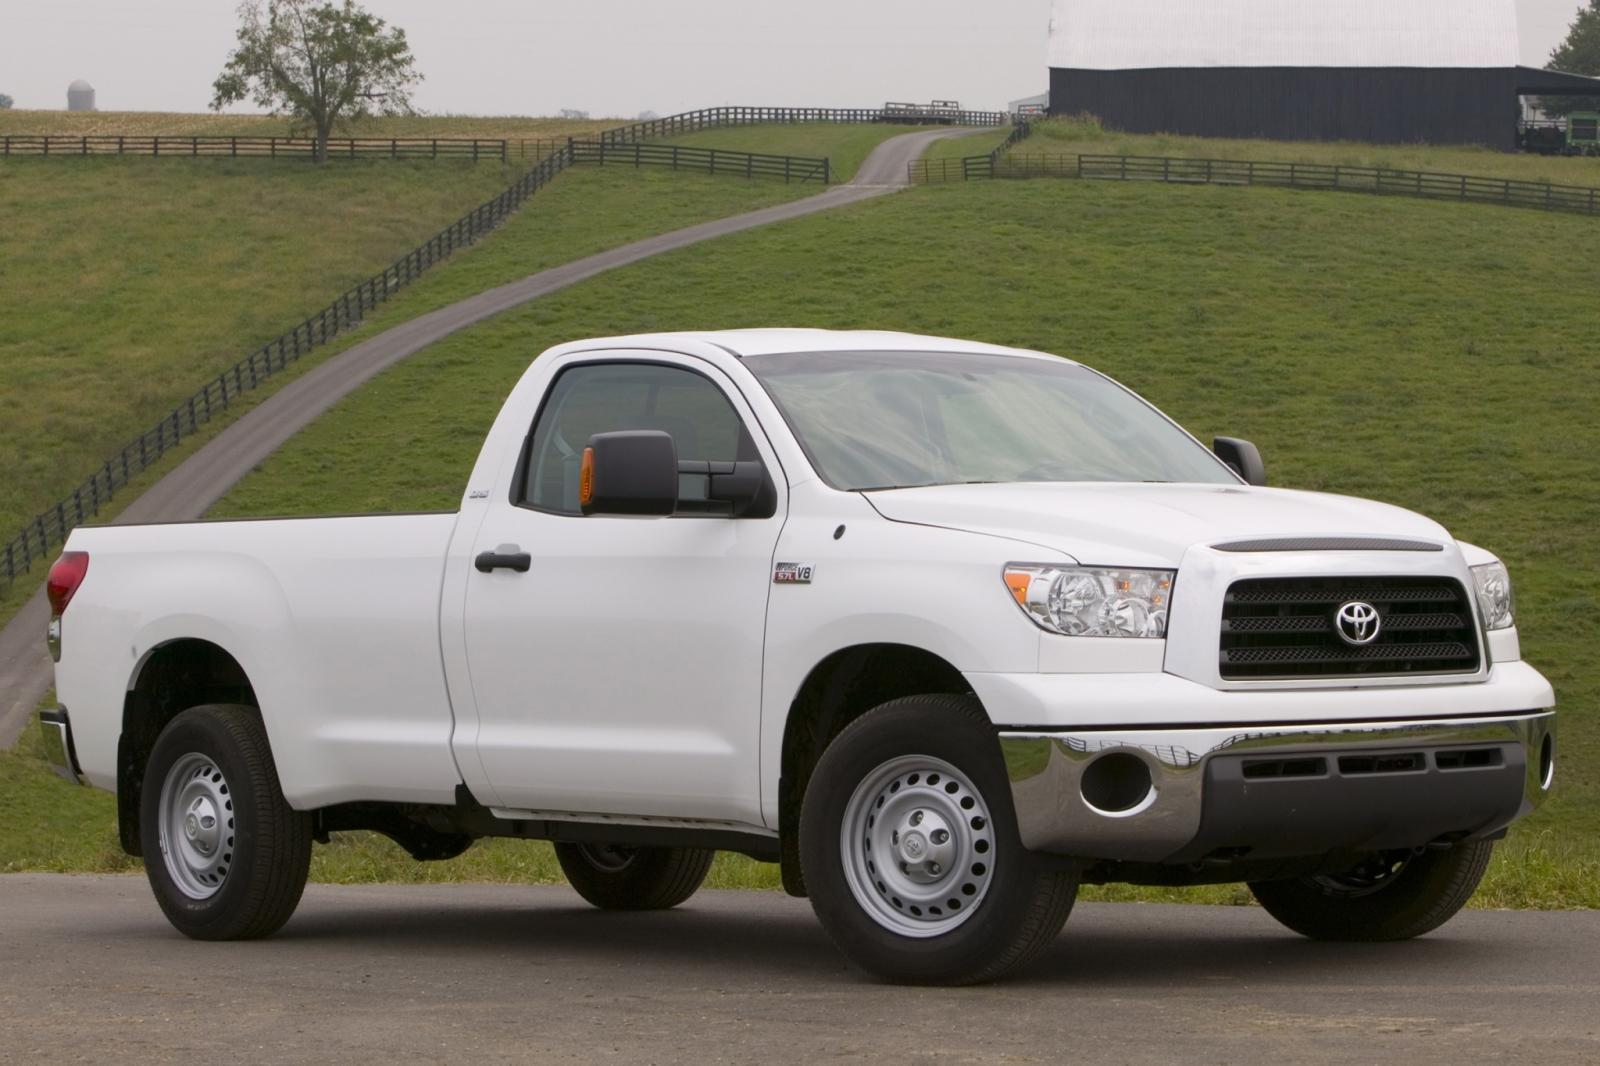 2007 toyota tundra information and photos zombiedrive. Black Bedroom Furniture Sets. Home Design Ideas